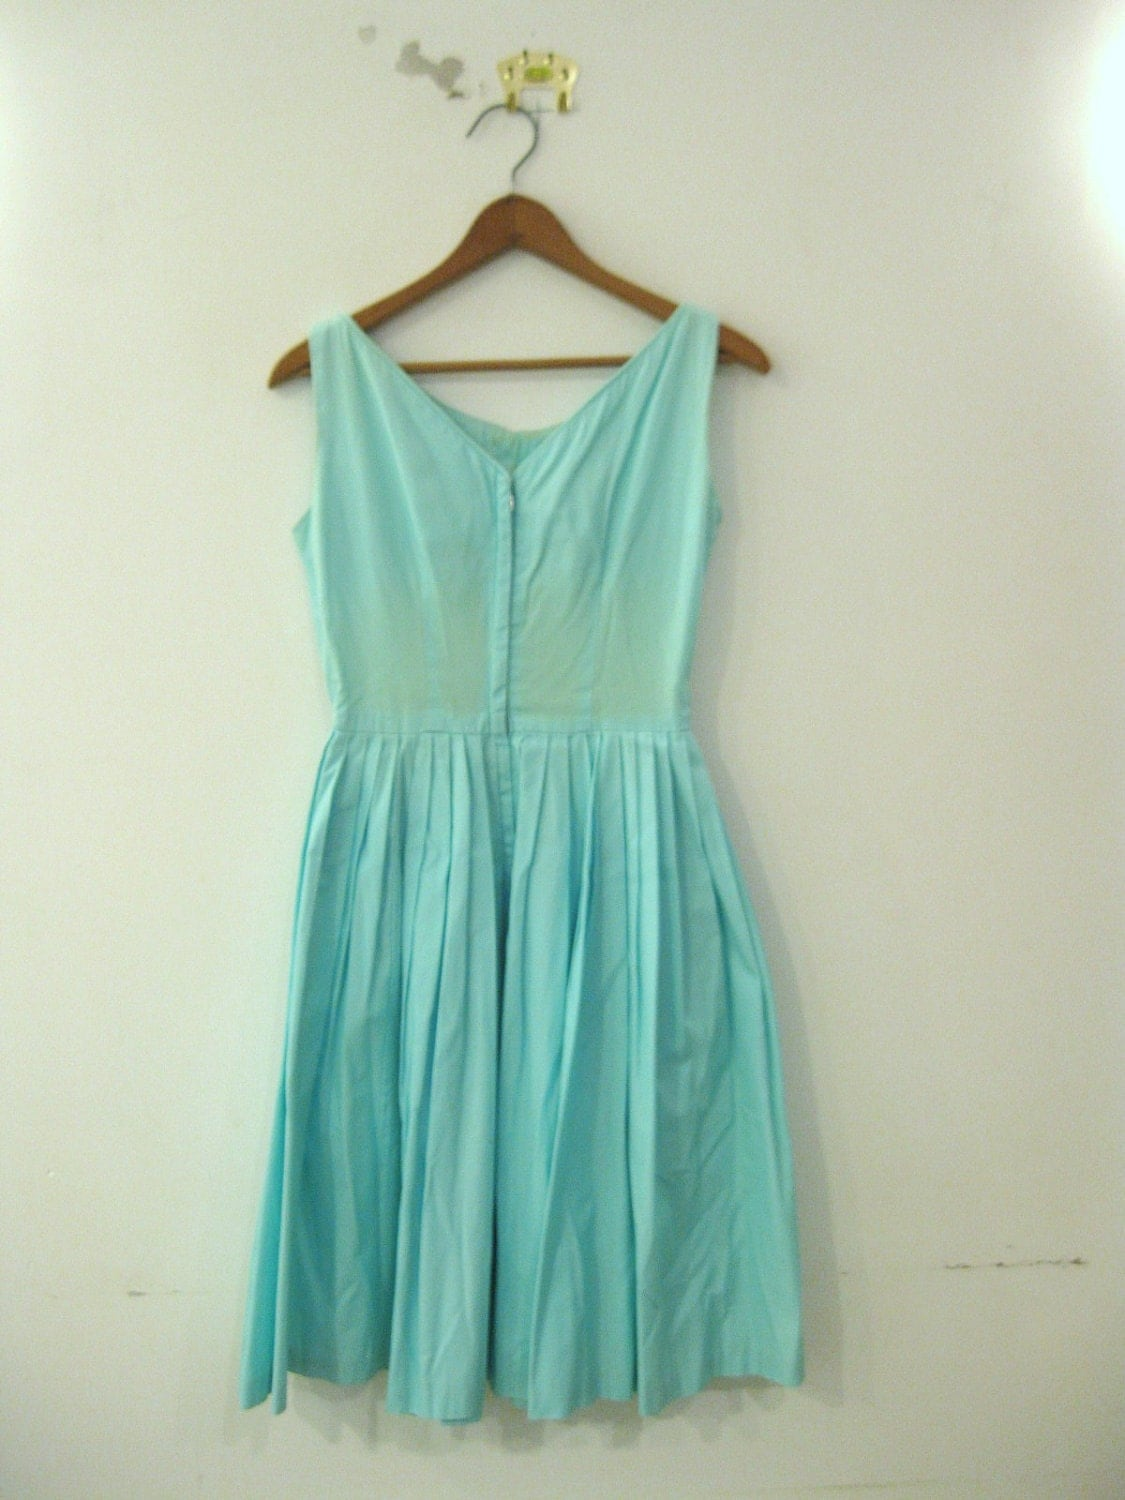 1940s-1950s LOVELY classic party dress